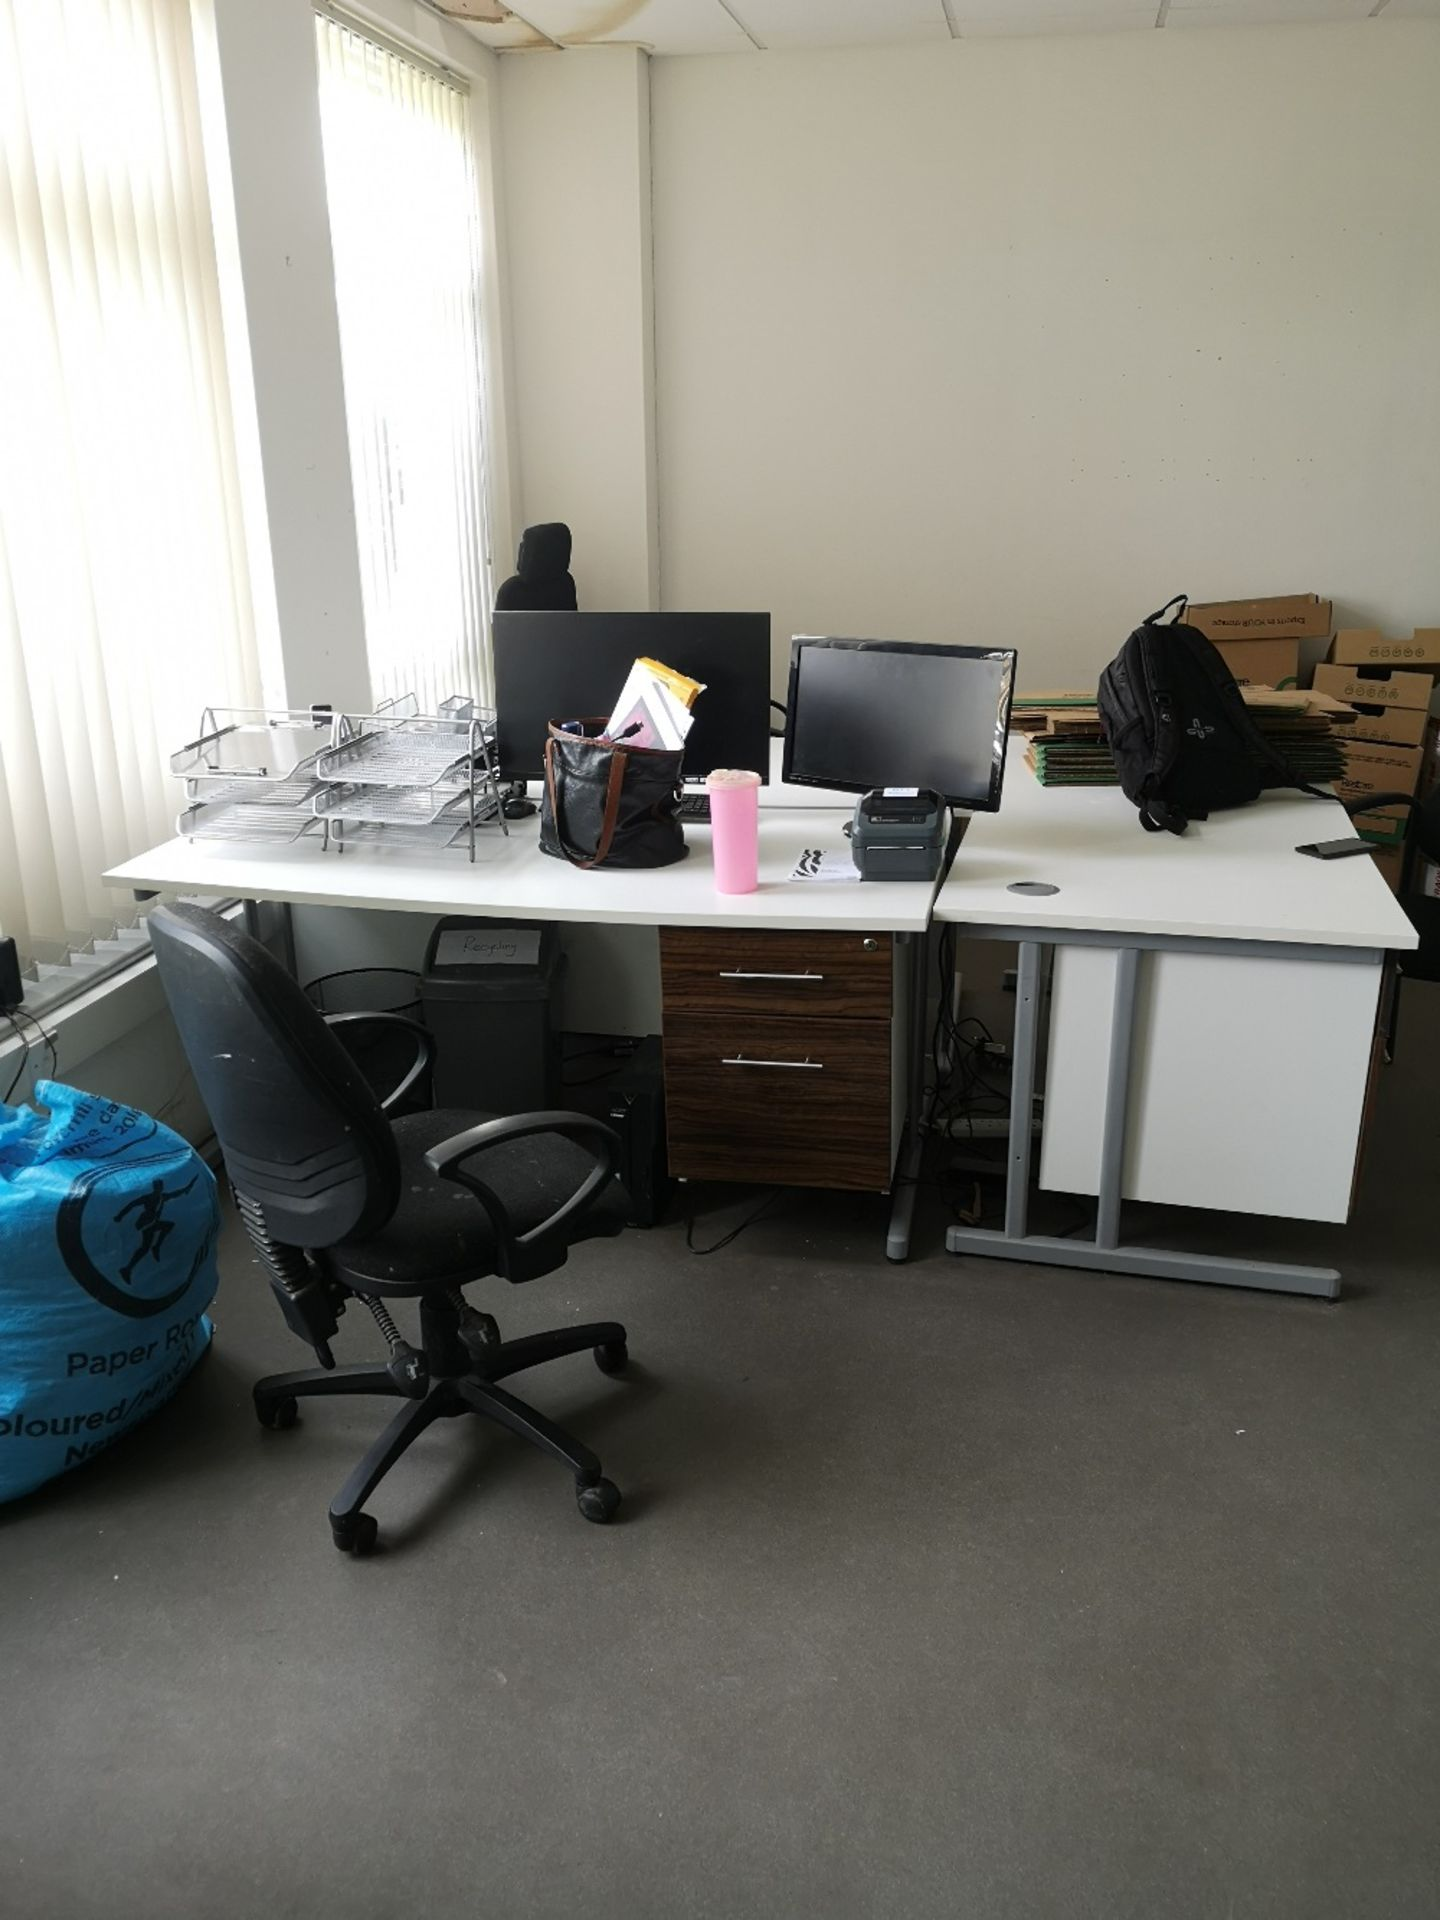 Office Furniture Contents of Room